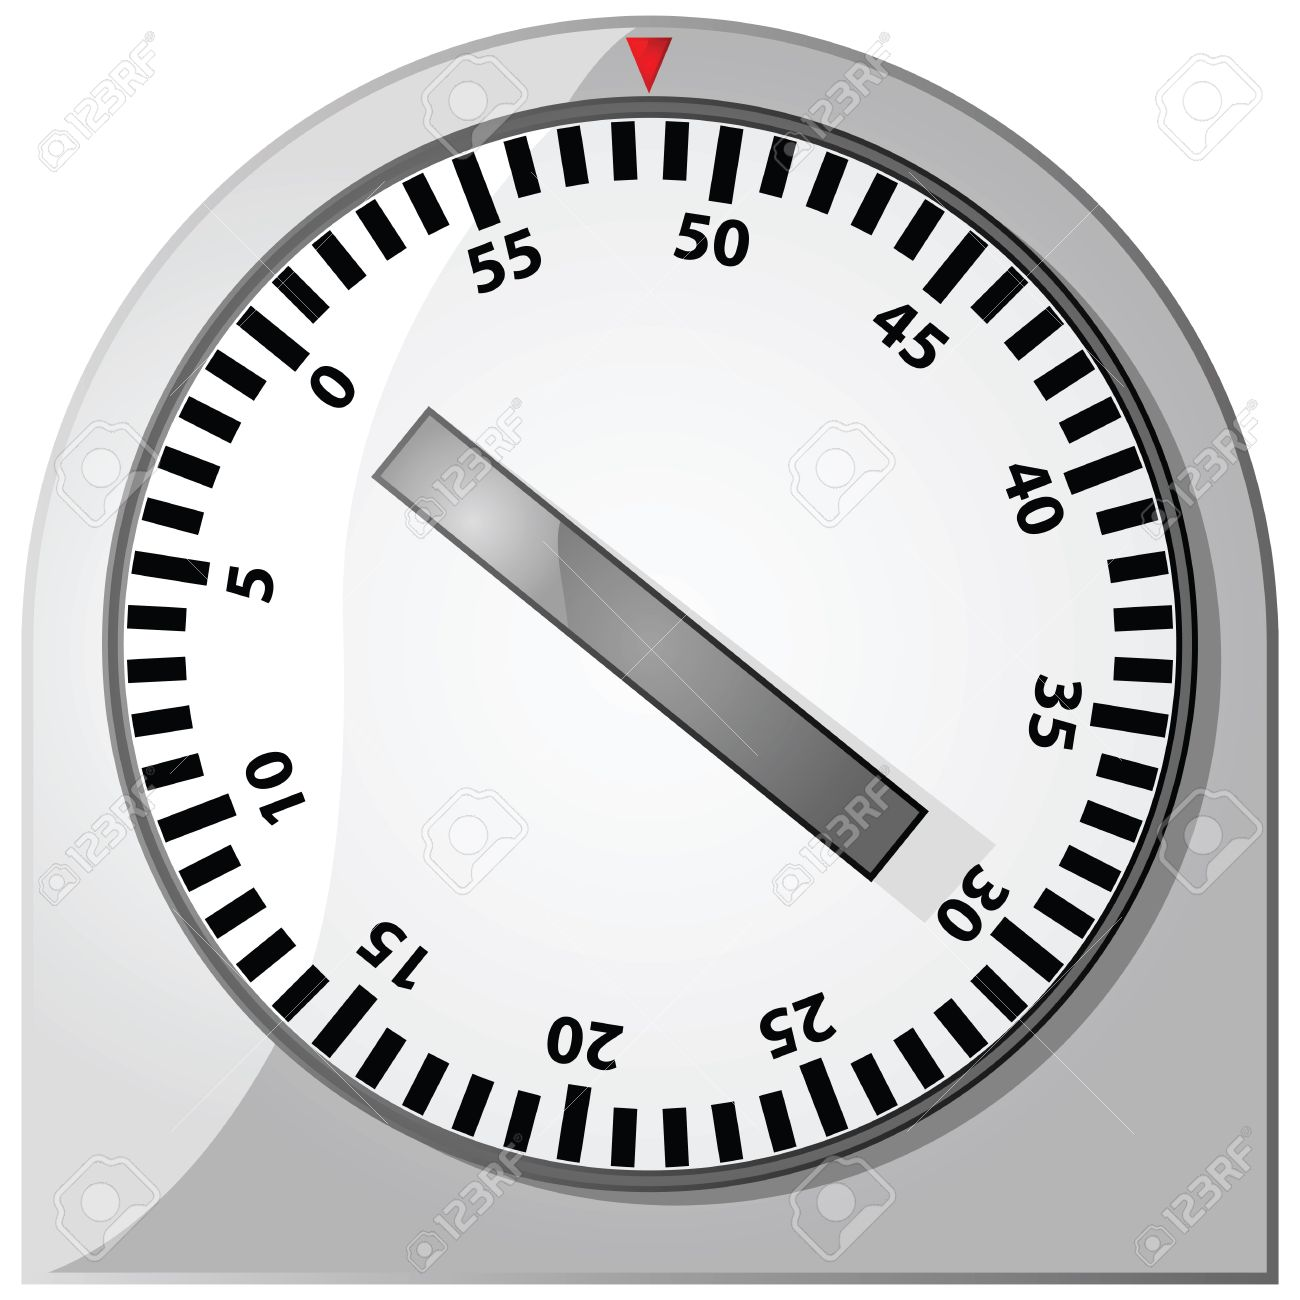 Glossy illustration of an analog 60-minute timer